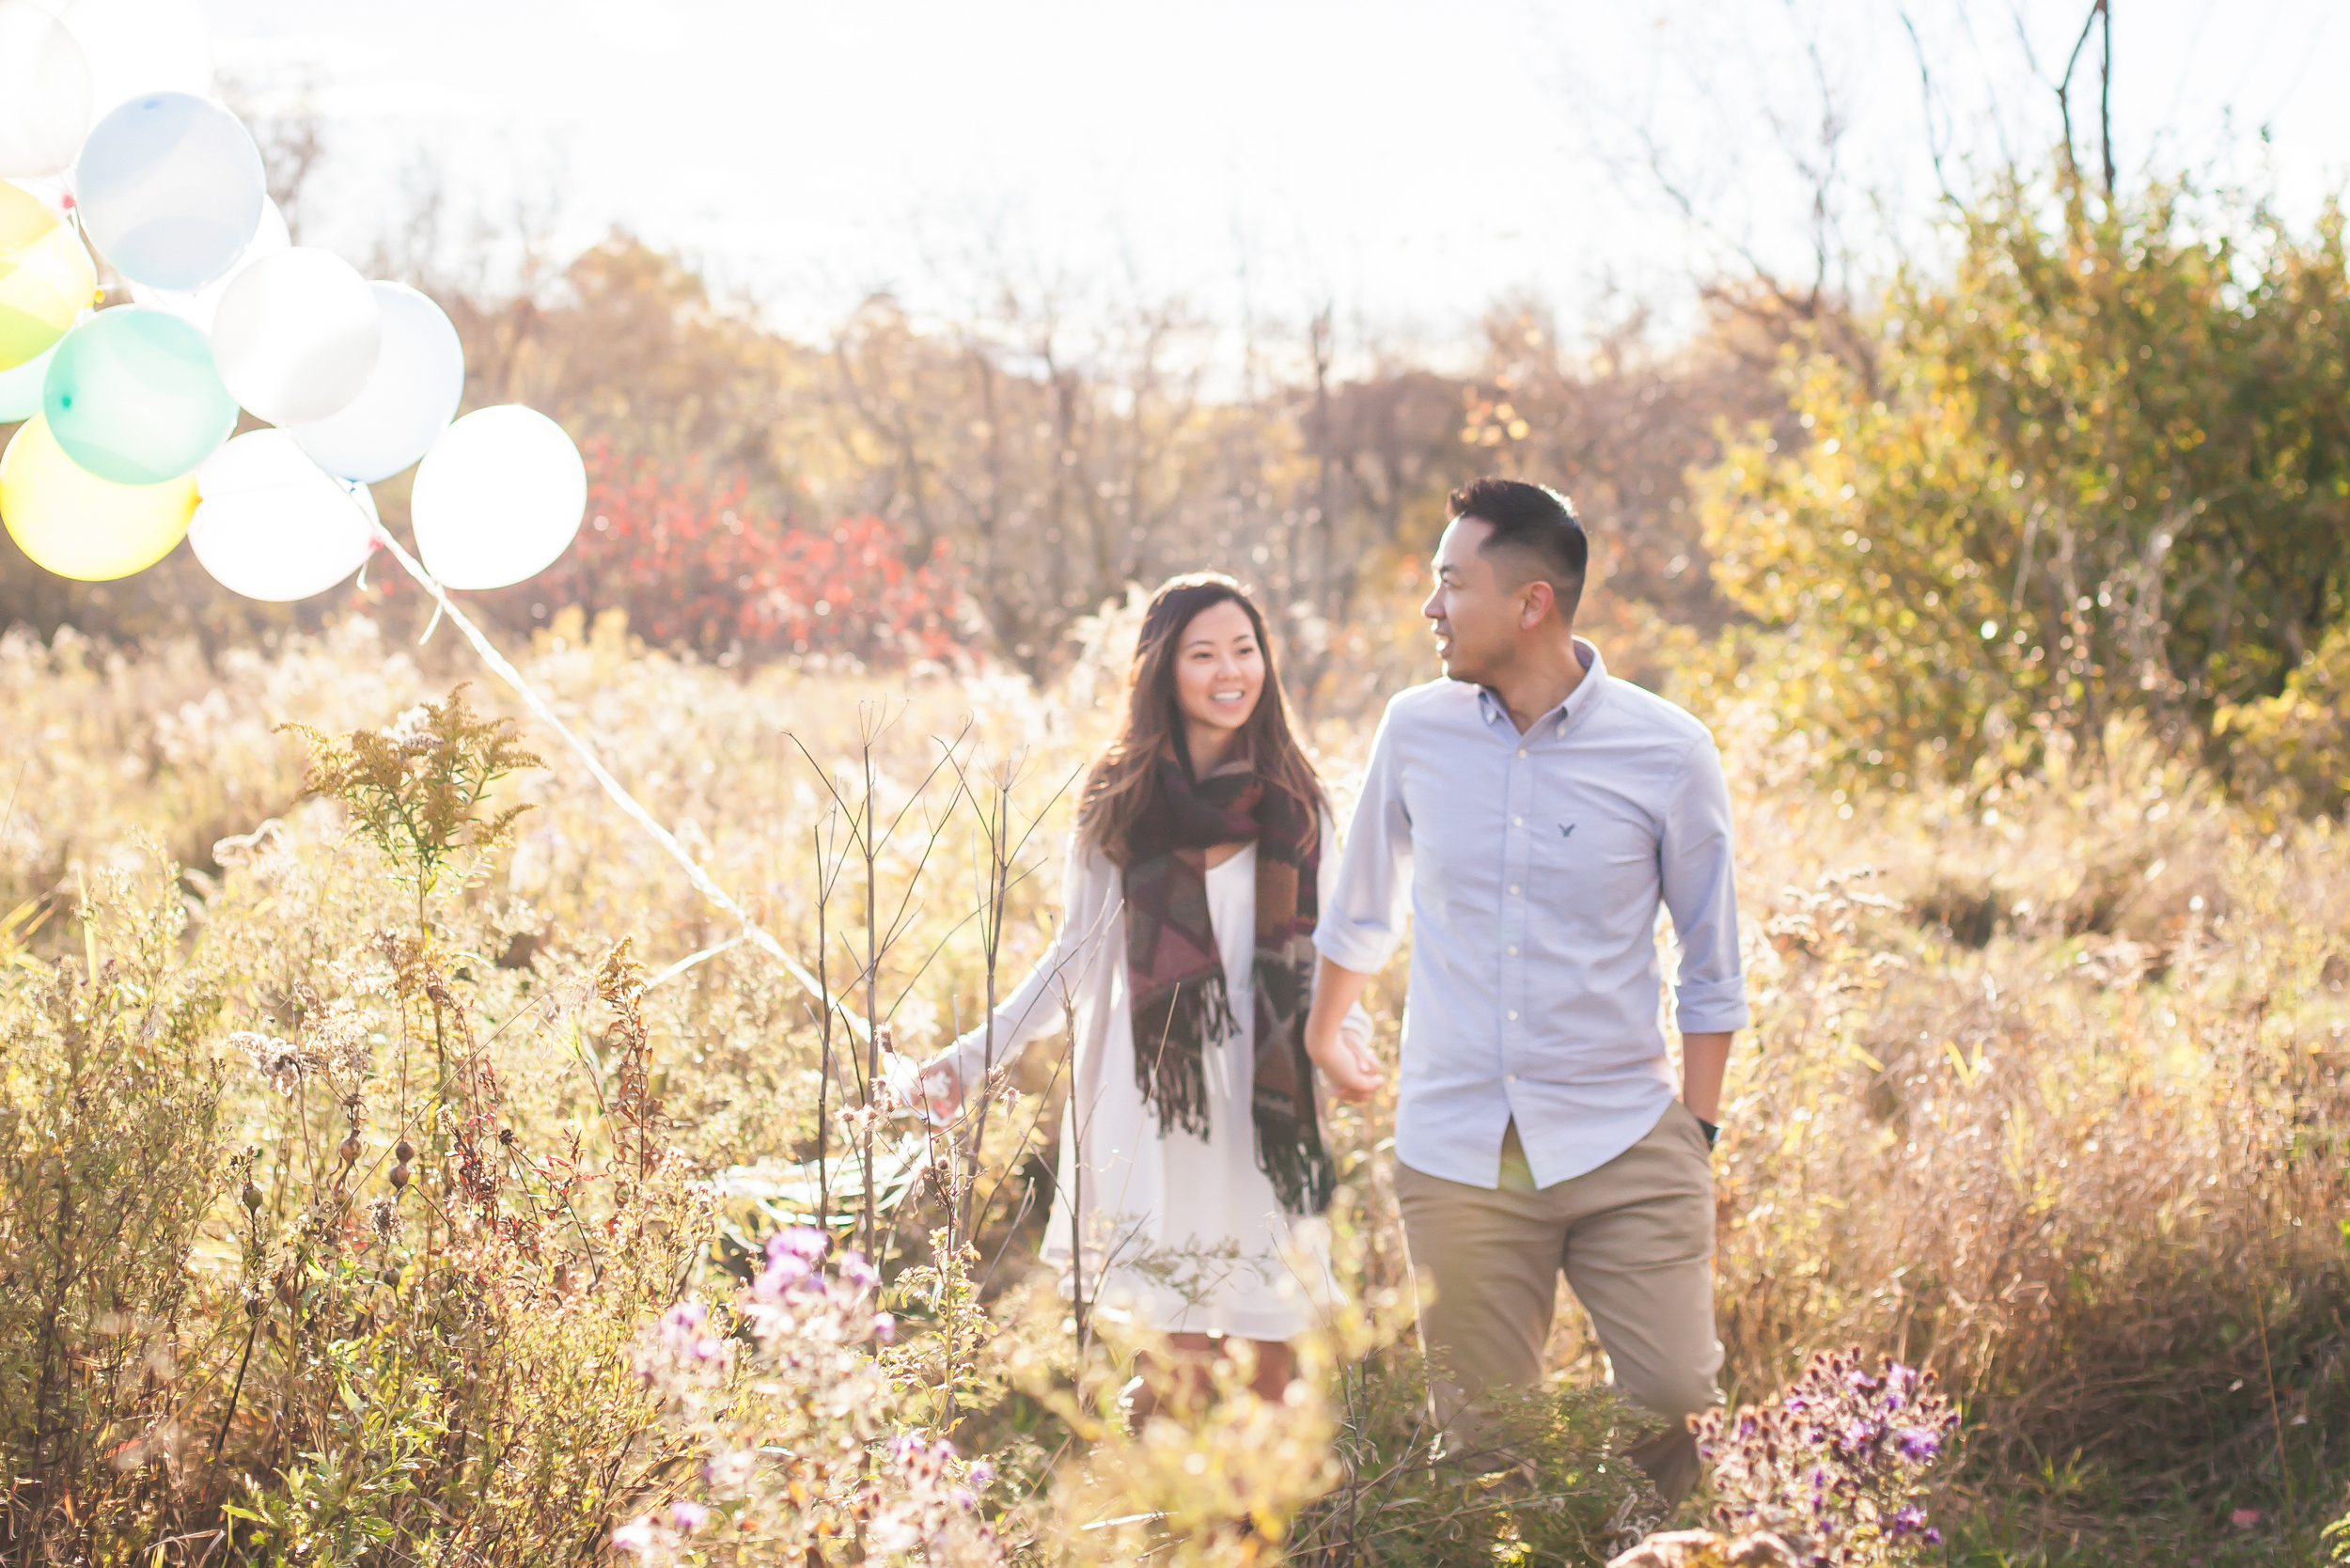 Outdoor engagement session on a field with pastel balloons